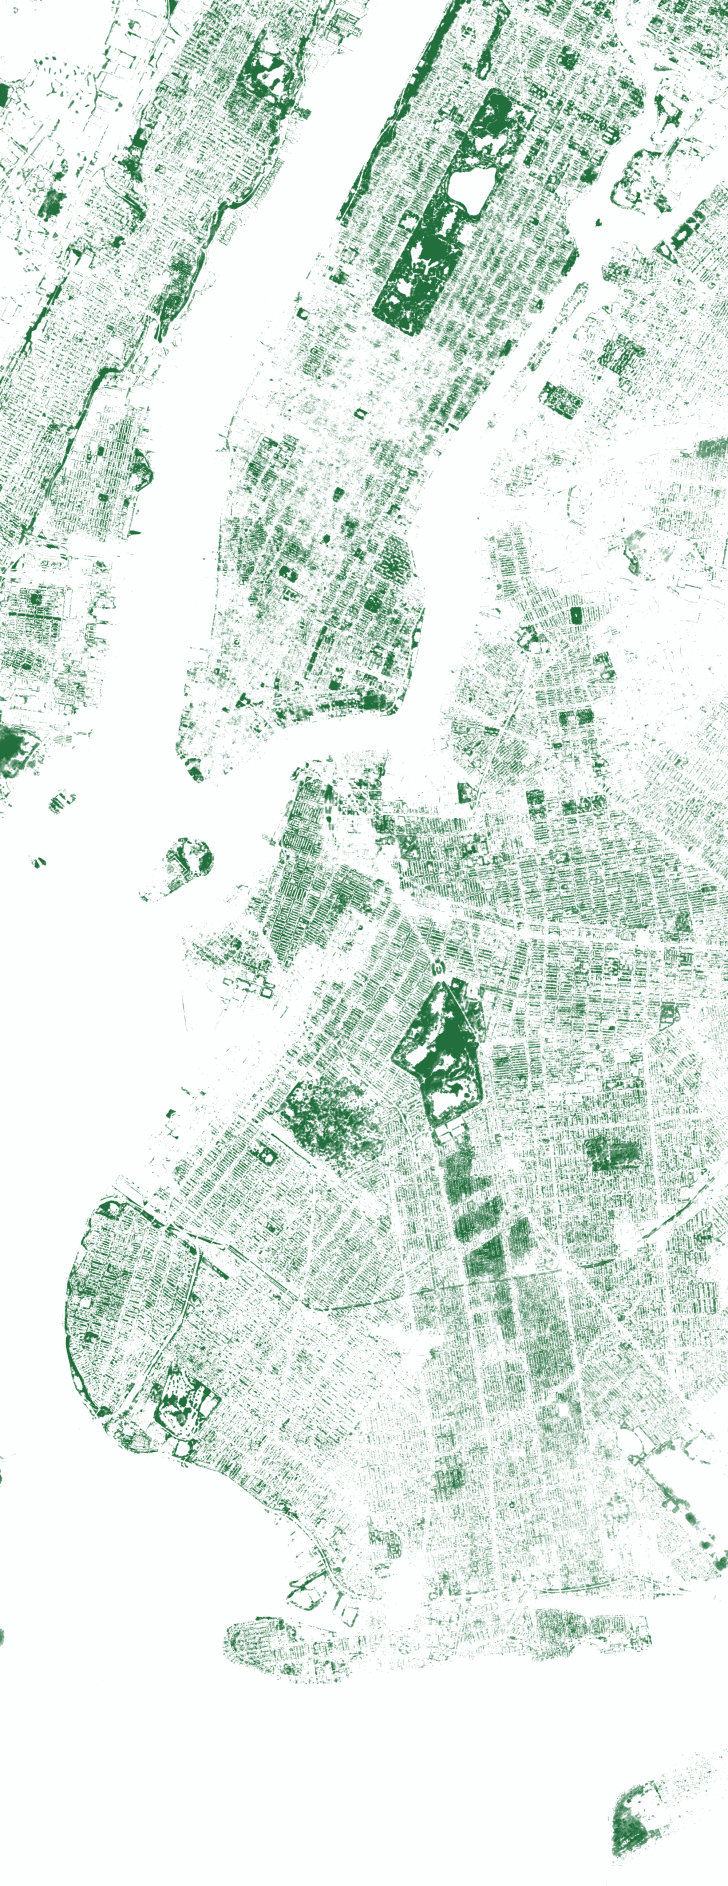 Map of New York City's Trees.